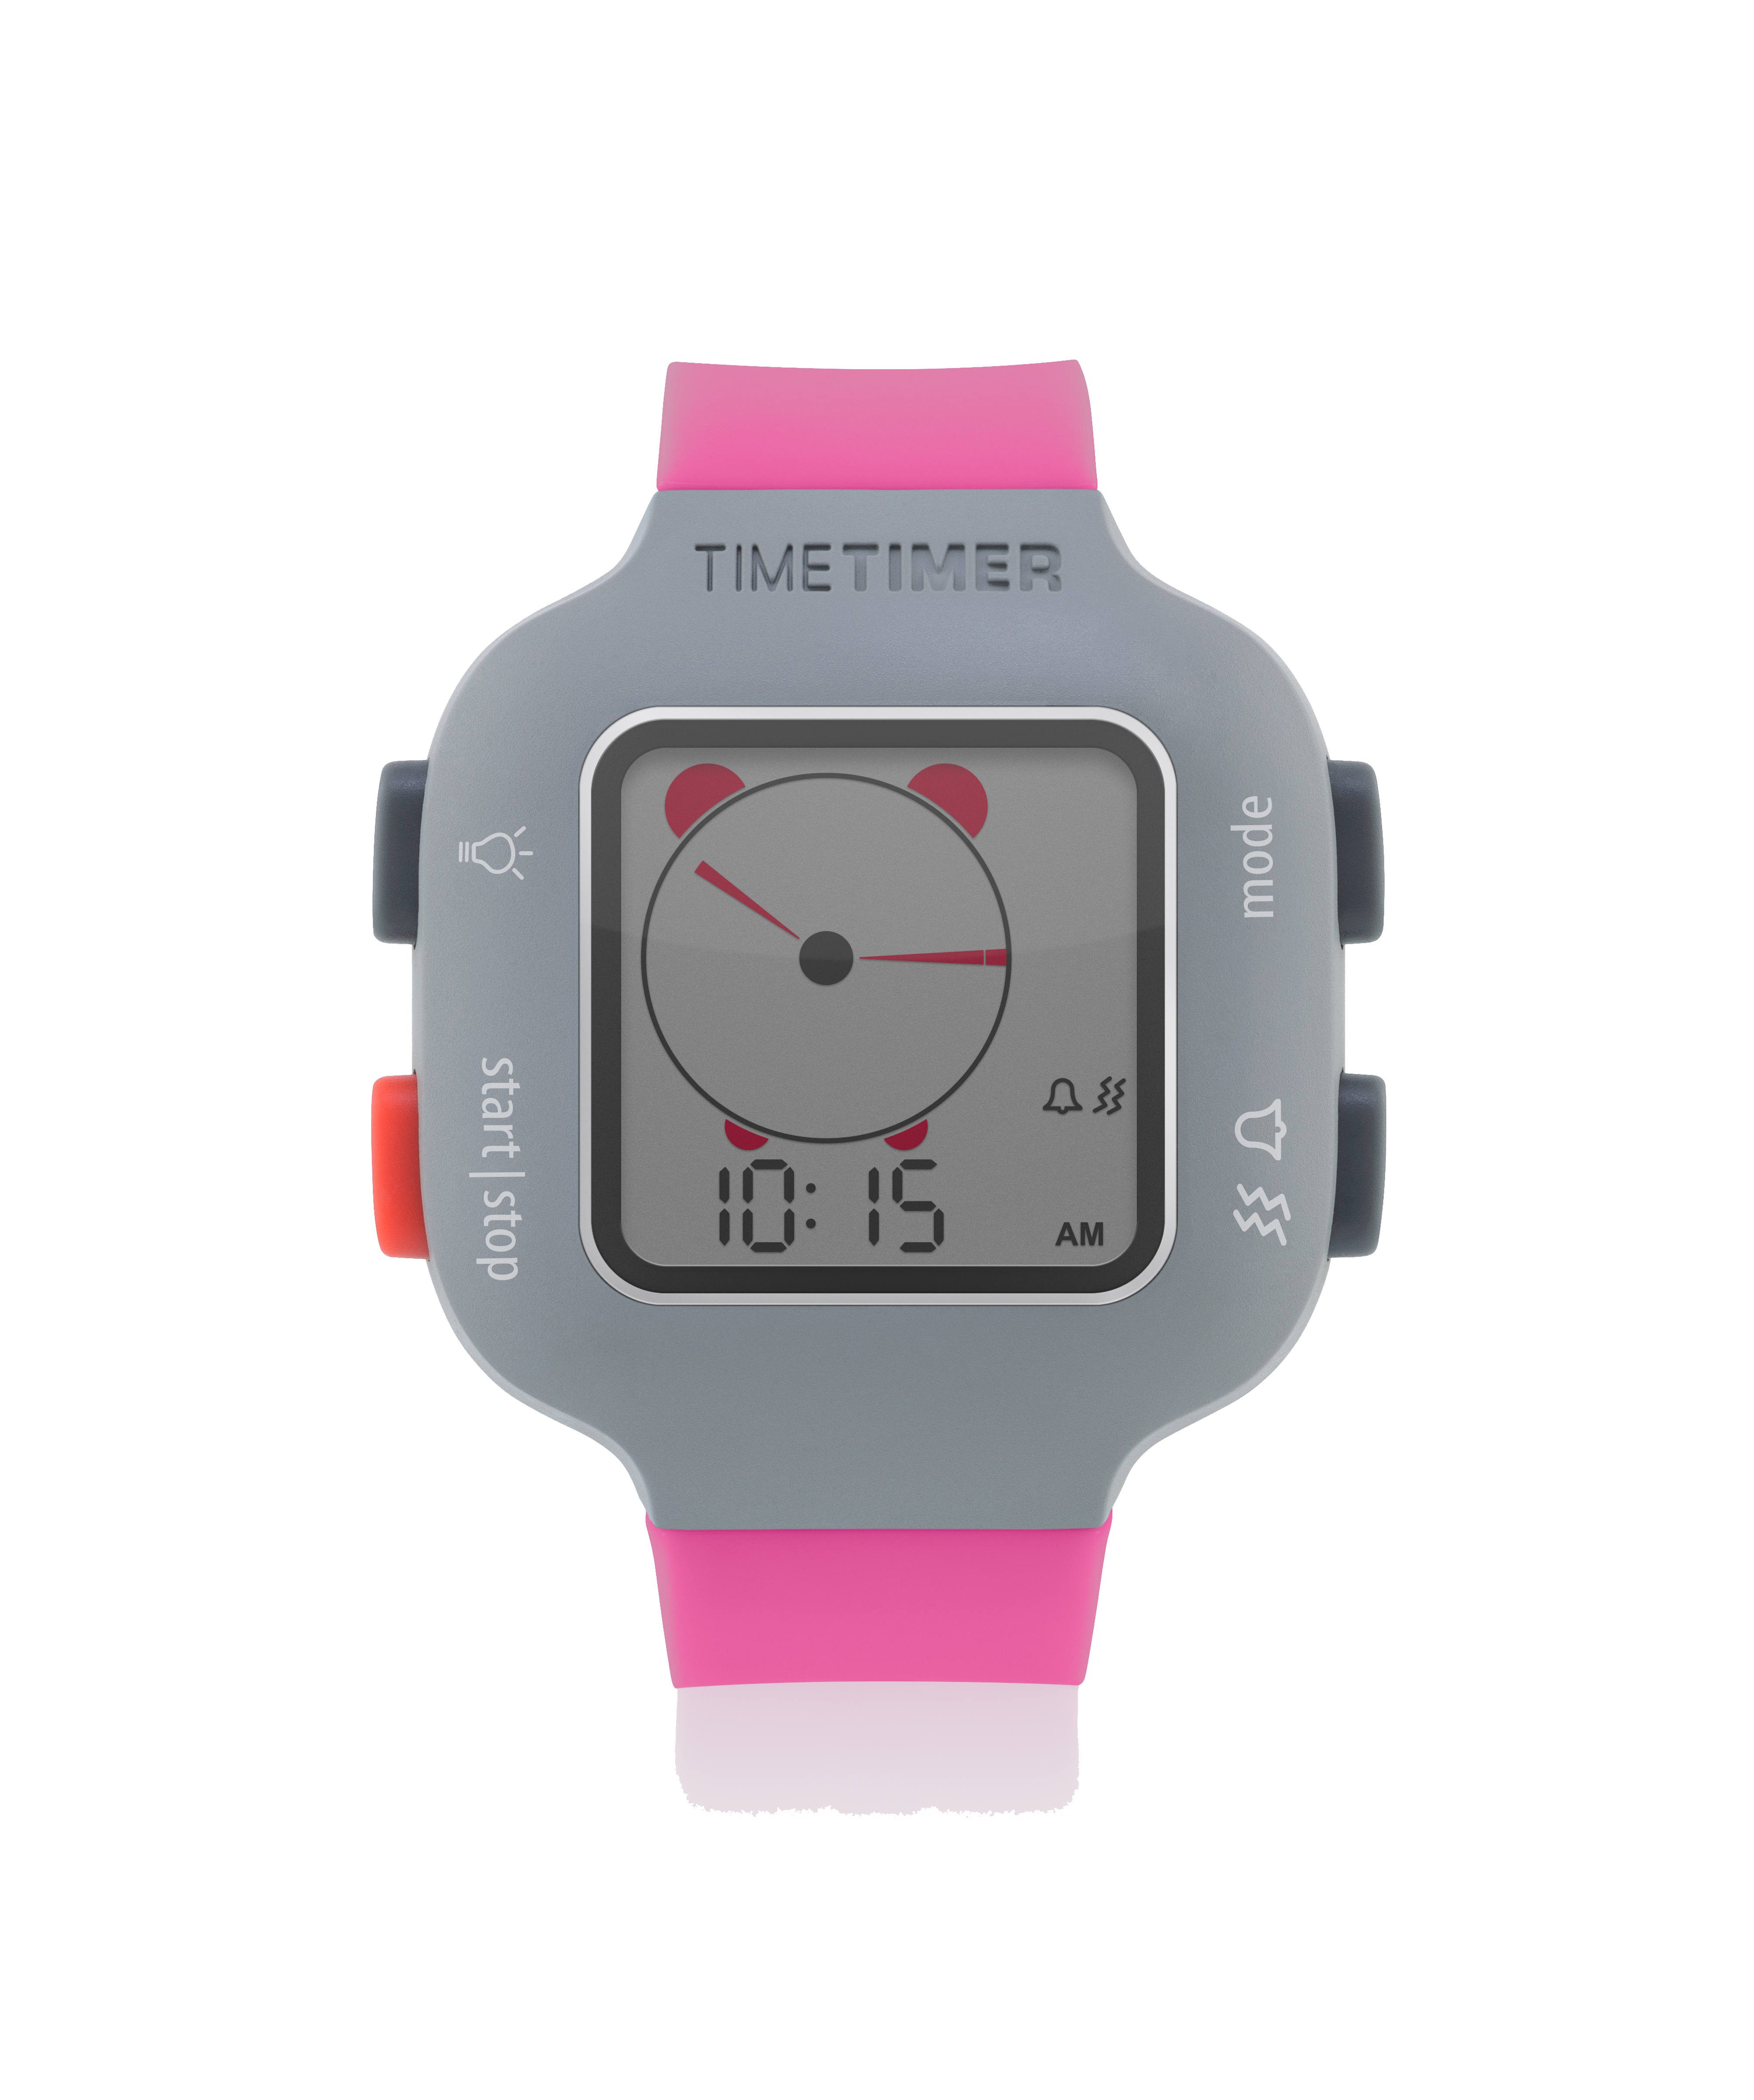 time timer watch plus in colour robo educational toys